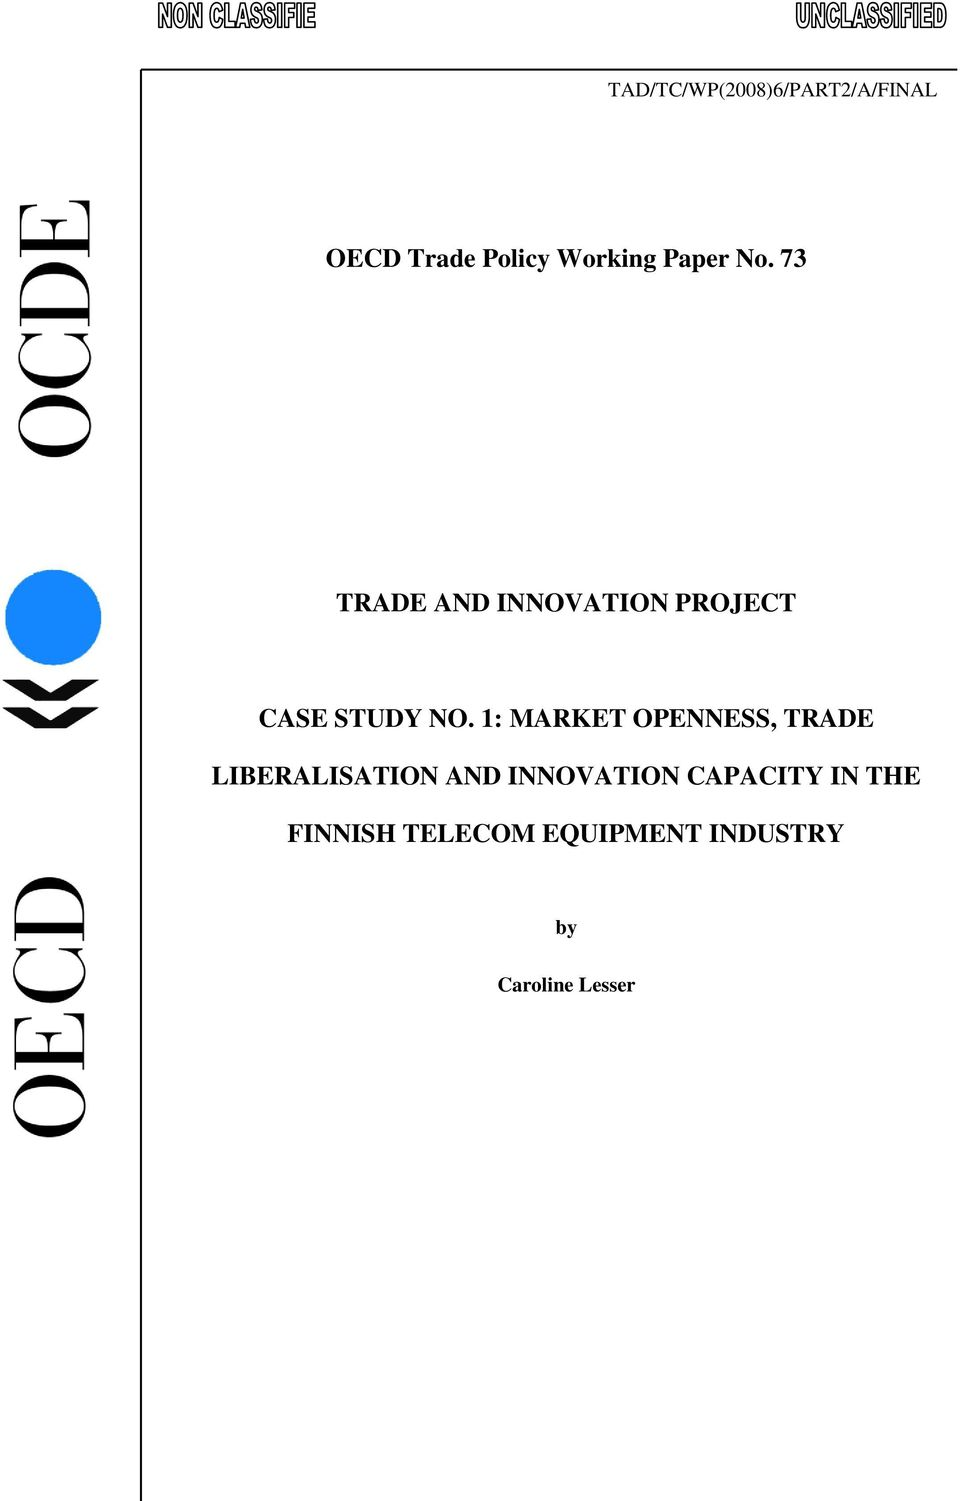 1: MARKET OPENNESS, TRADE LIBERALISATION AND